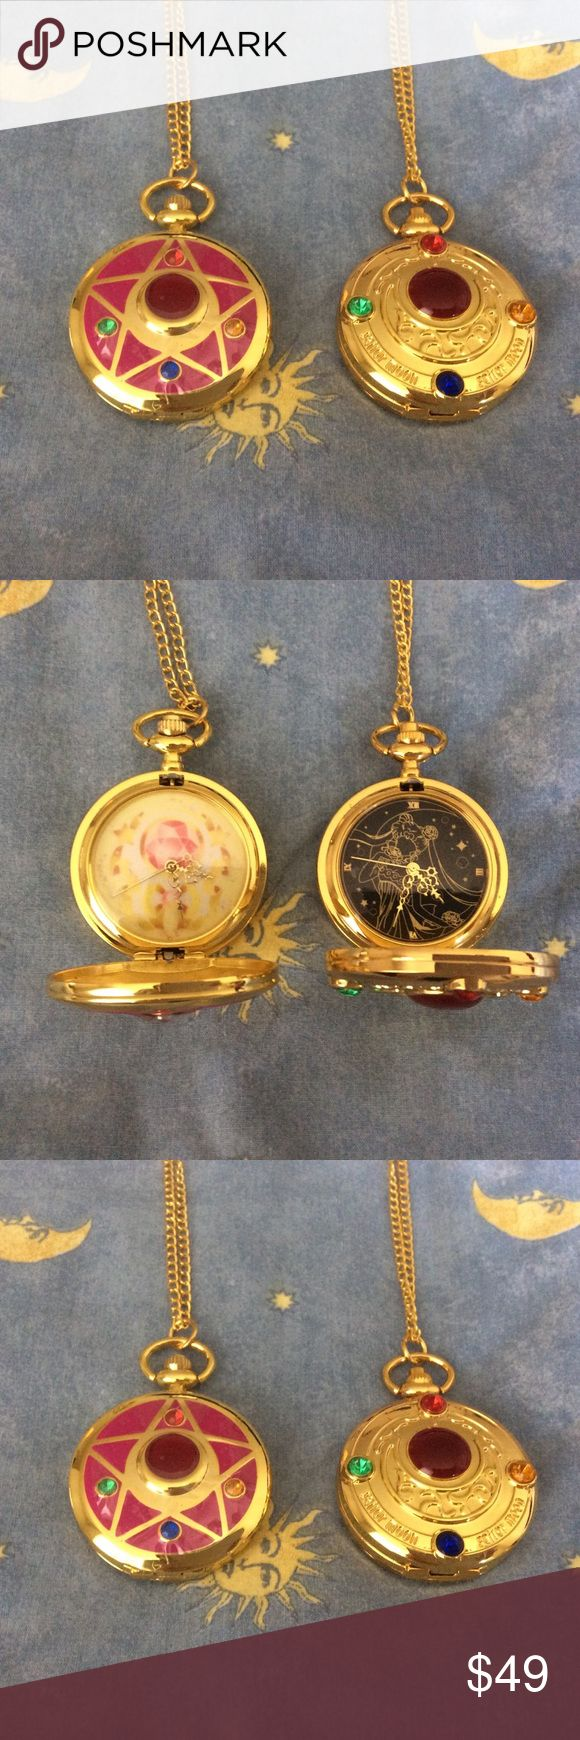 "Sailor Moon necklace locket watch jewelry anime Awesome locket featuring Sailor Moon purchased in Japan last year. You are getting the right gold one...the pink one sold~ New never worn and still had the protective plastic attached so it may look blurry but it's sharp and cute!   Watch is is working condition! Approximately 2"" circle and 15"" drop or 30"" total length necklace   Super cute and unique for any Sailor Moon : anime : Japanese : manga : kawaii : fan .... Japanese Jewelry Necklaces"